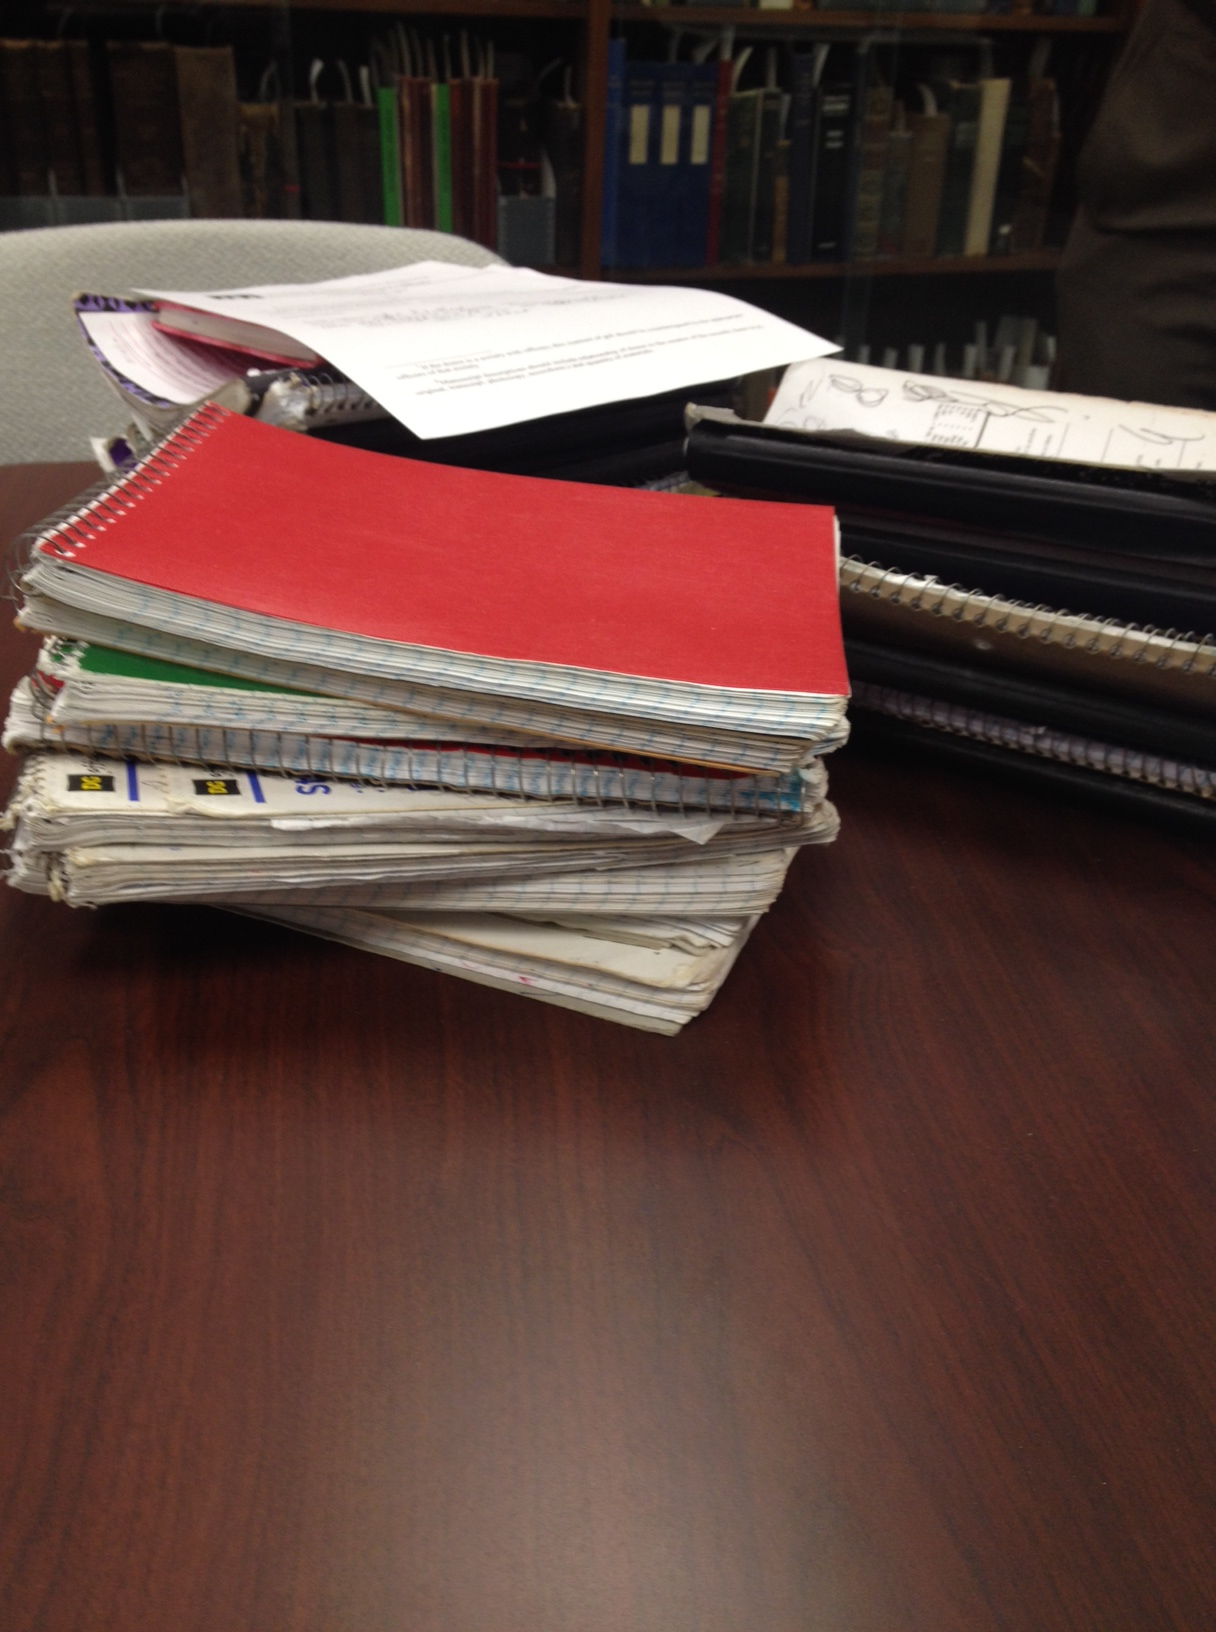 Stacks and stacks of notebooks!